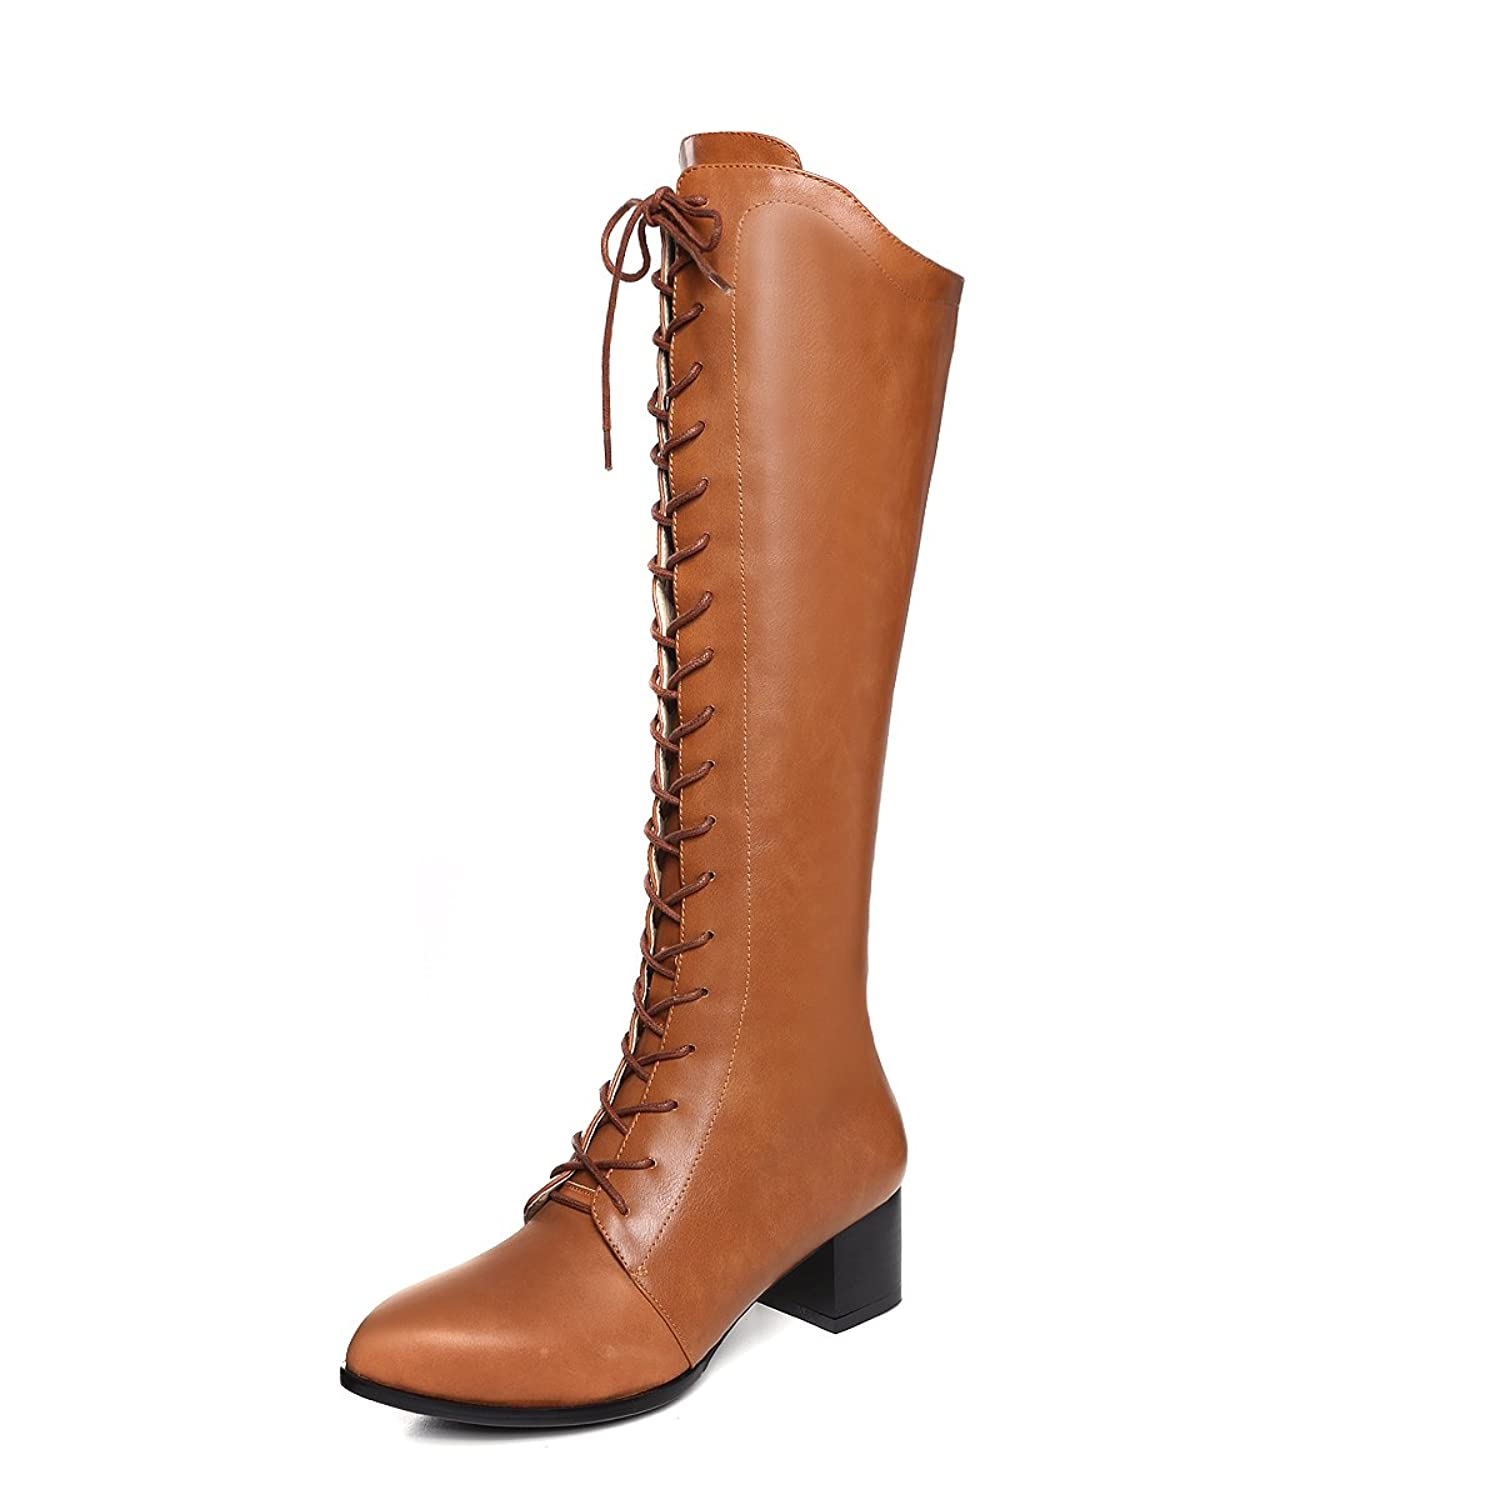 Vintage Boots- Winter Rain and Snow Boots NIQI Genuine Leather Womens Mid Heel Knee High Booties Side Zipper Combat Military Motorcycle Boots $89.00 AT vintagedancer.com